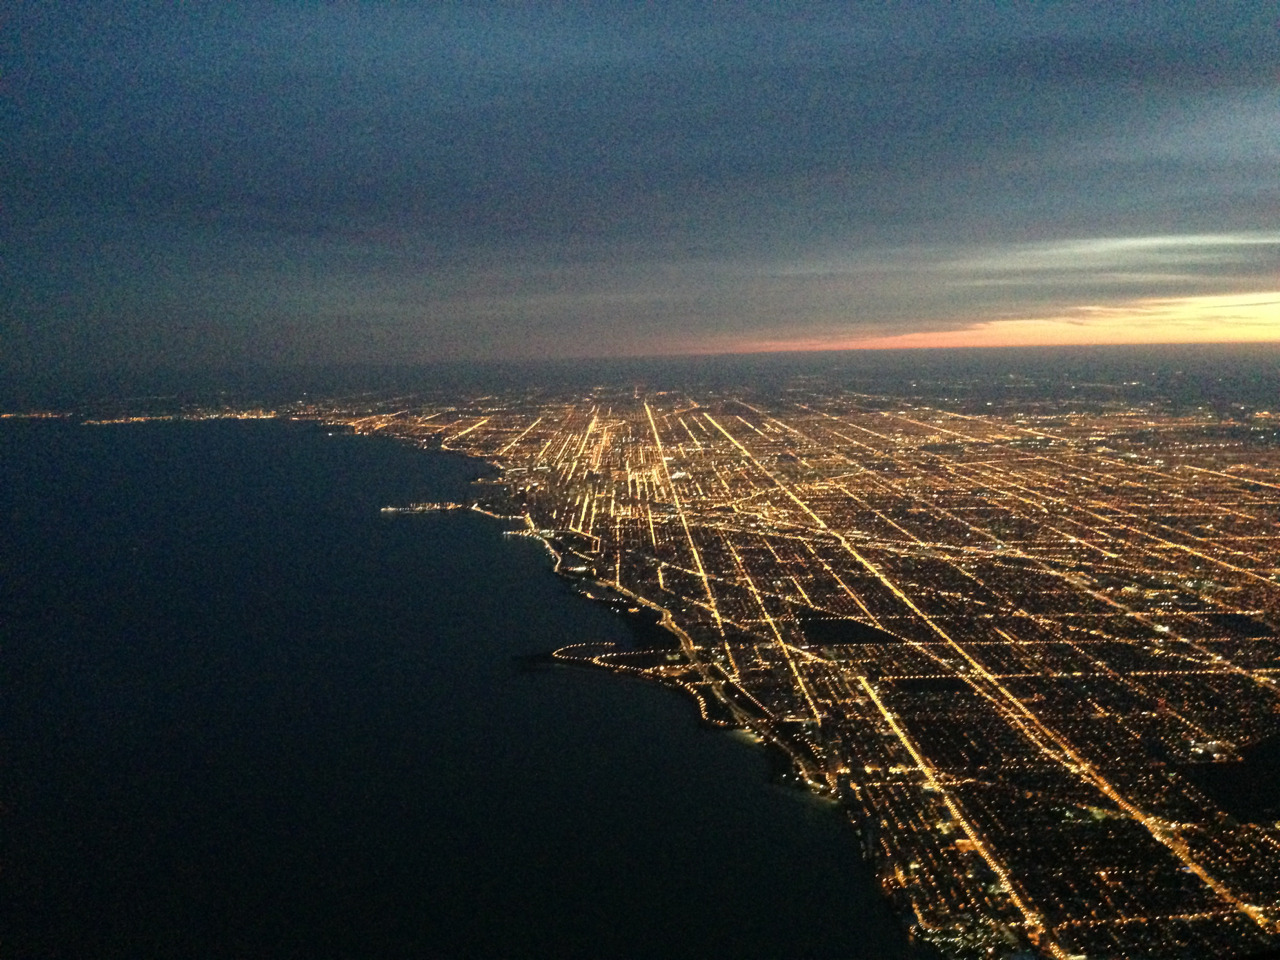 Climbing out of Chicago tonight.